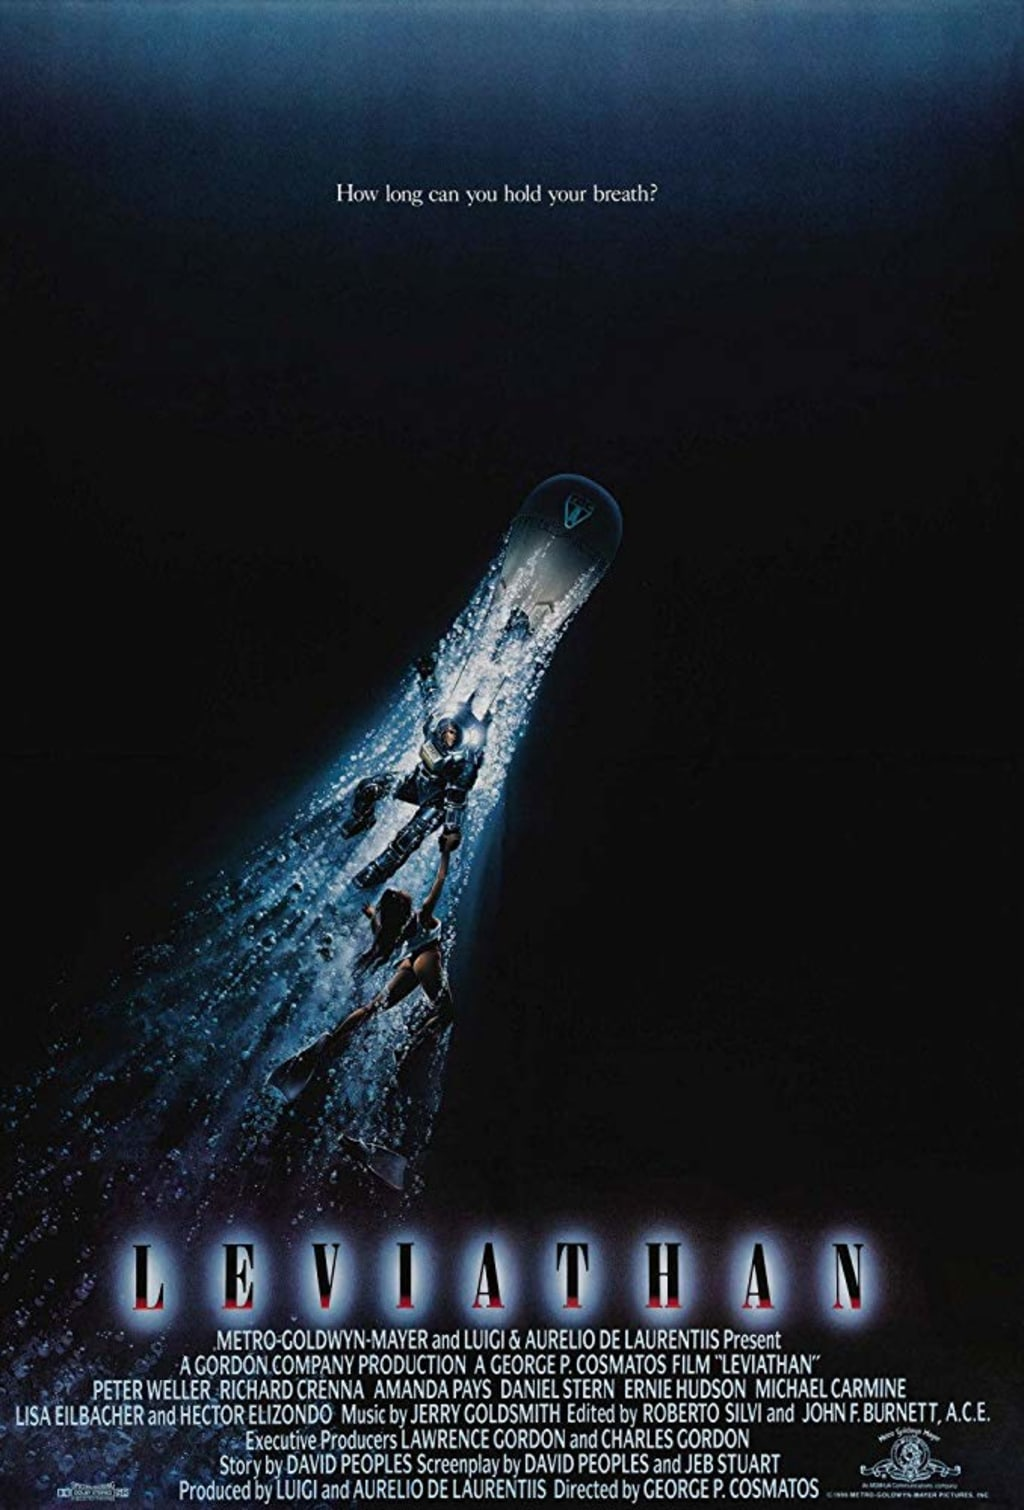 Reed Alexander's Horror Review of 'Leviathan' (1989)